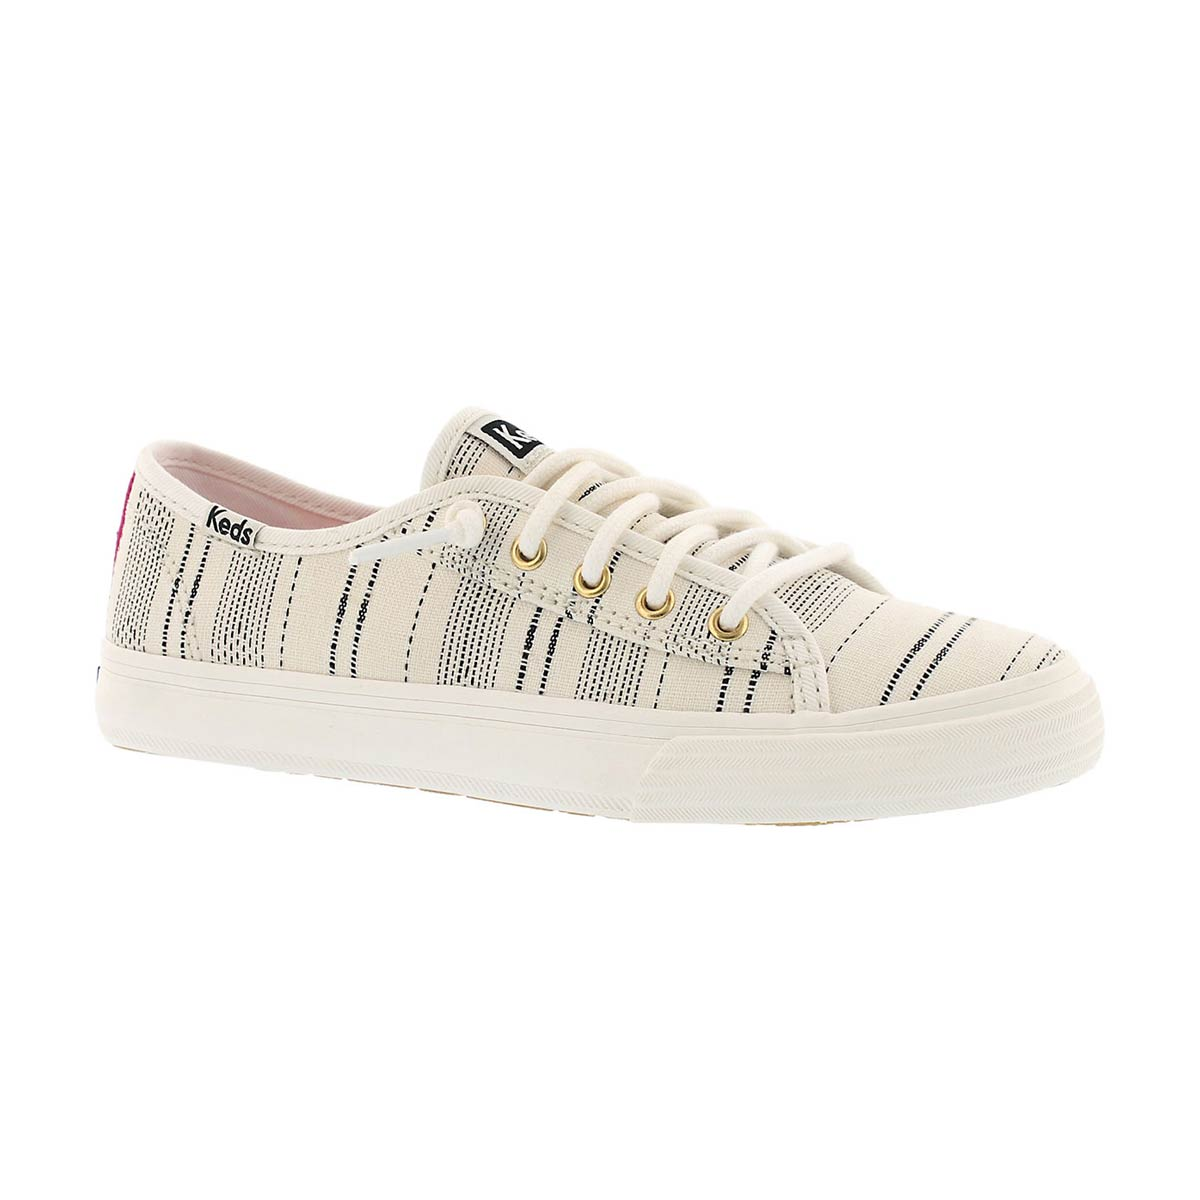 Girls' DOUBLE UP ivory lace-up sneakers